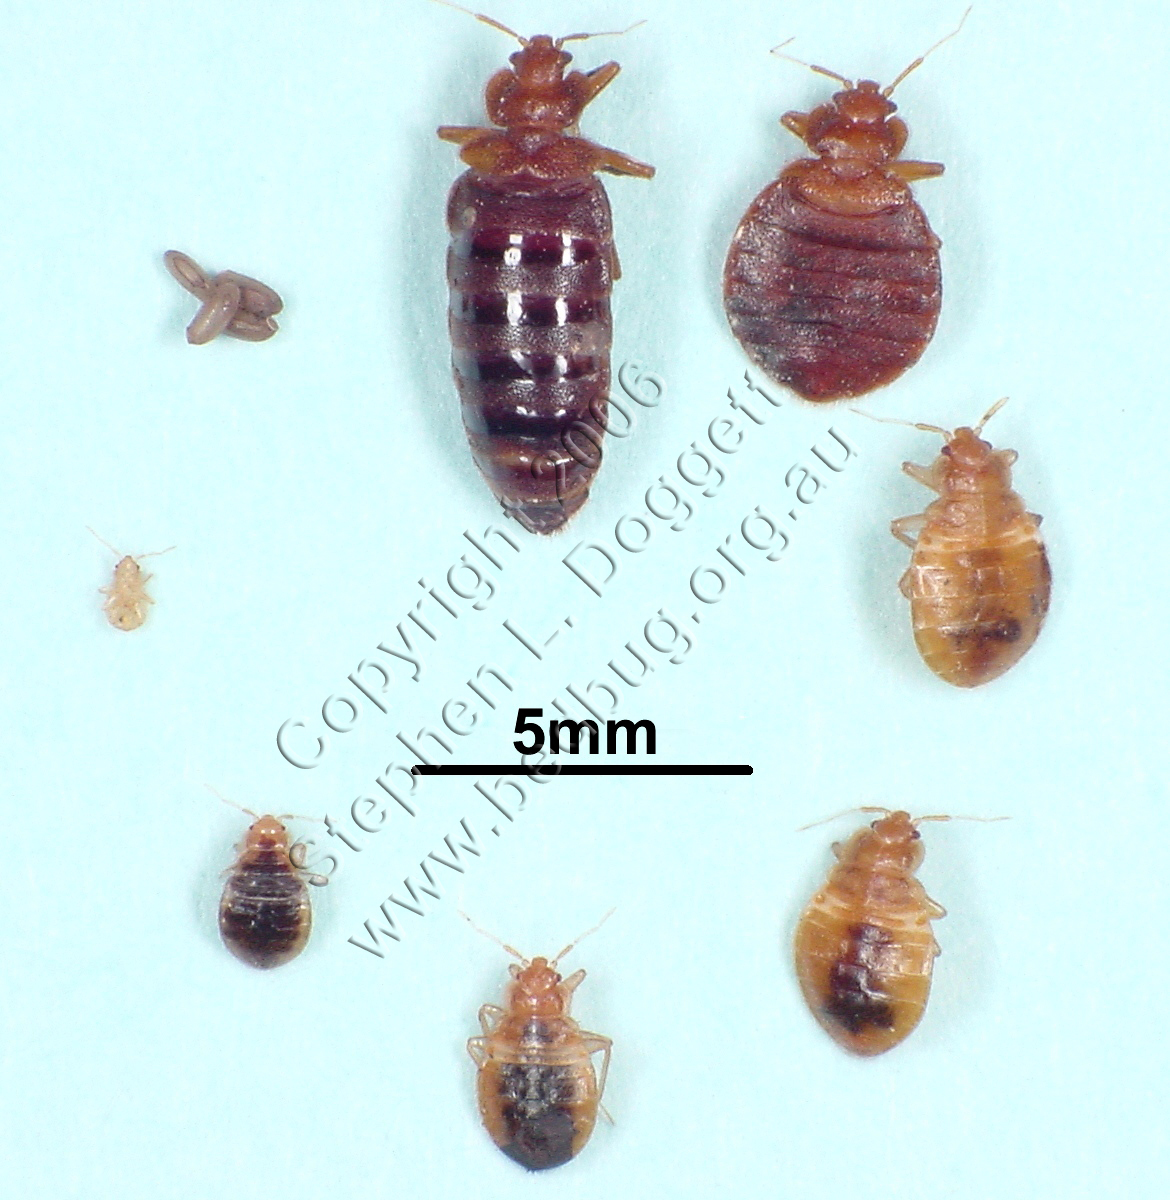 Here are some amazing photos of bedbugs feeding, including adults and